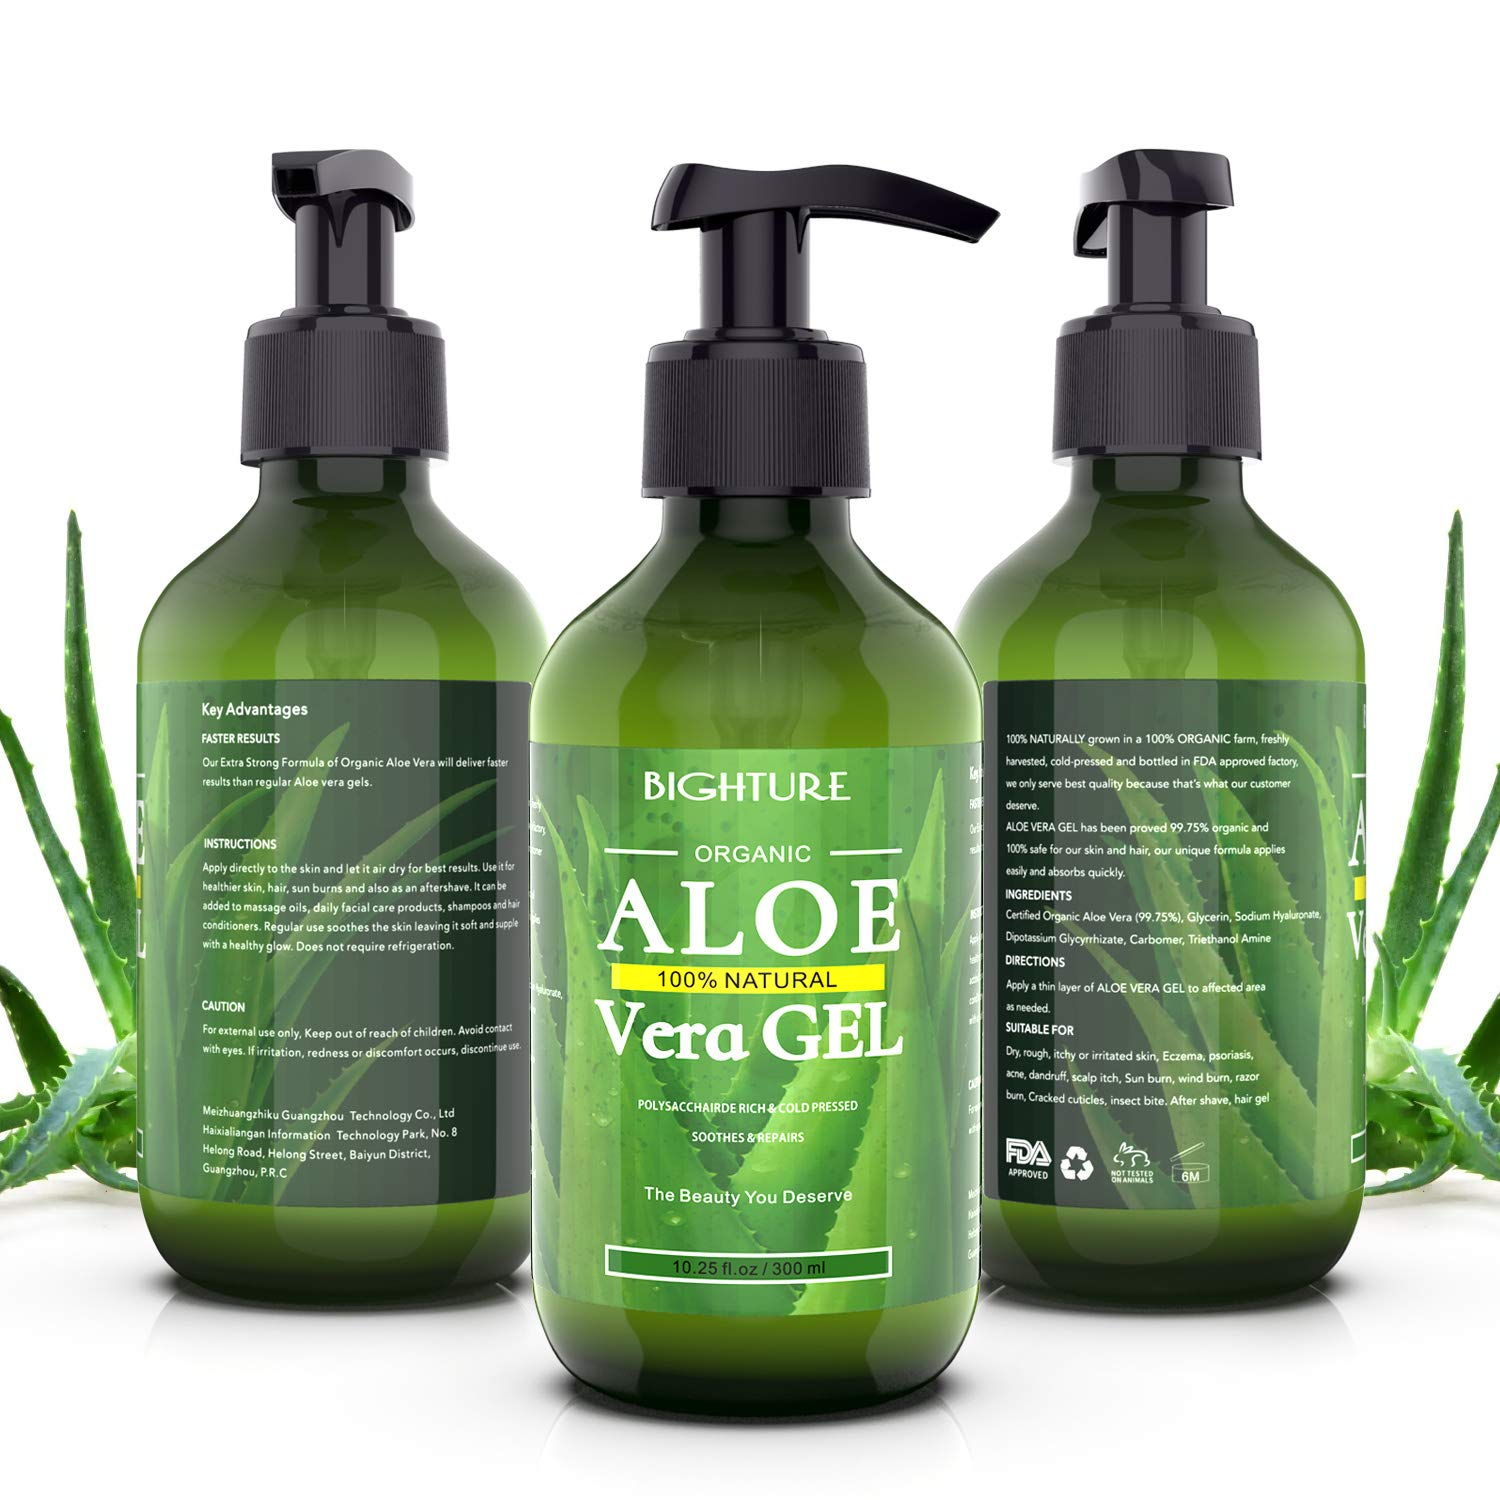 Aloe Vera Gel, Bighture Pure Aloe Vera Gel With Organic Aloe for Healthy Skin, Hair & After Sun Relief(10.25fl.oz/300ml)